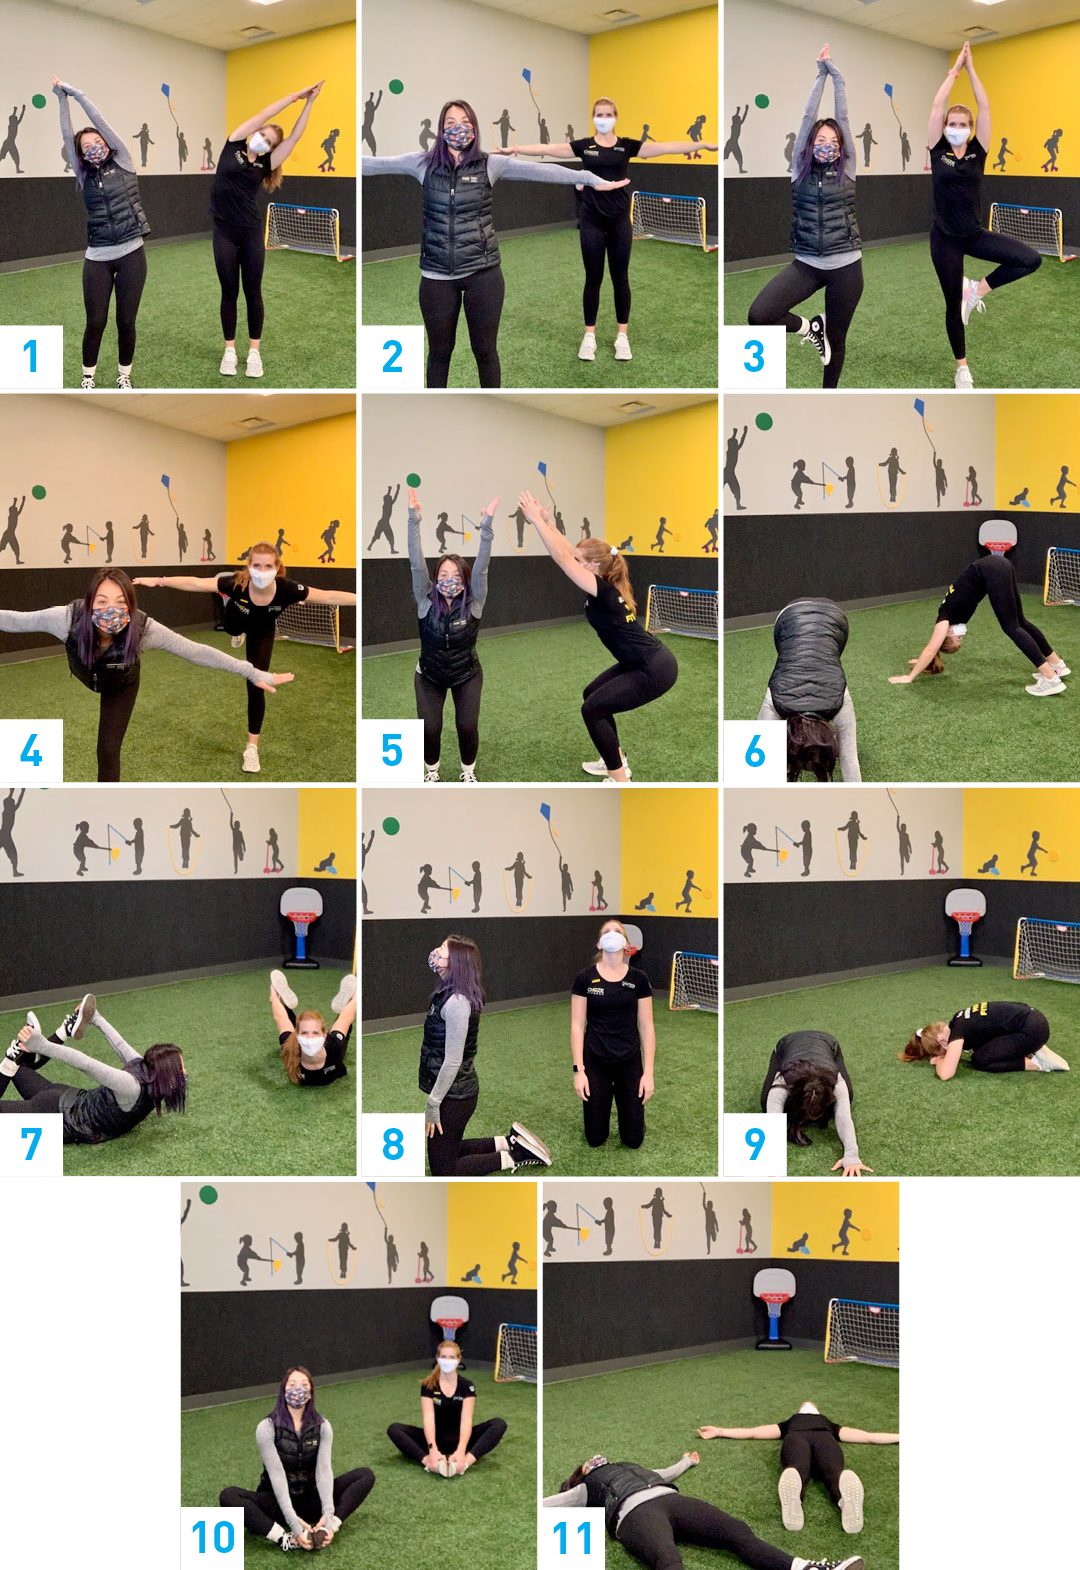 A collage of images showing examples of each numbered yoga move